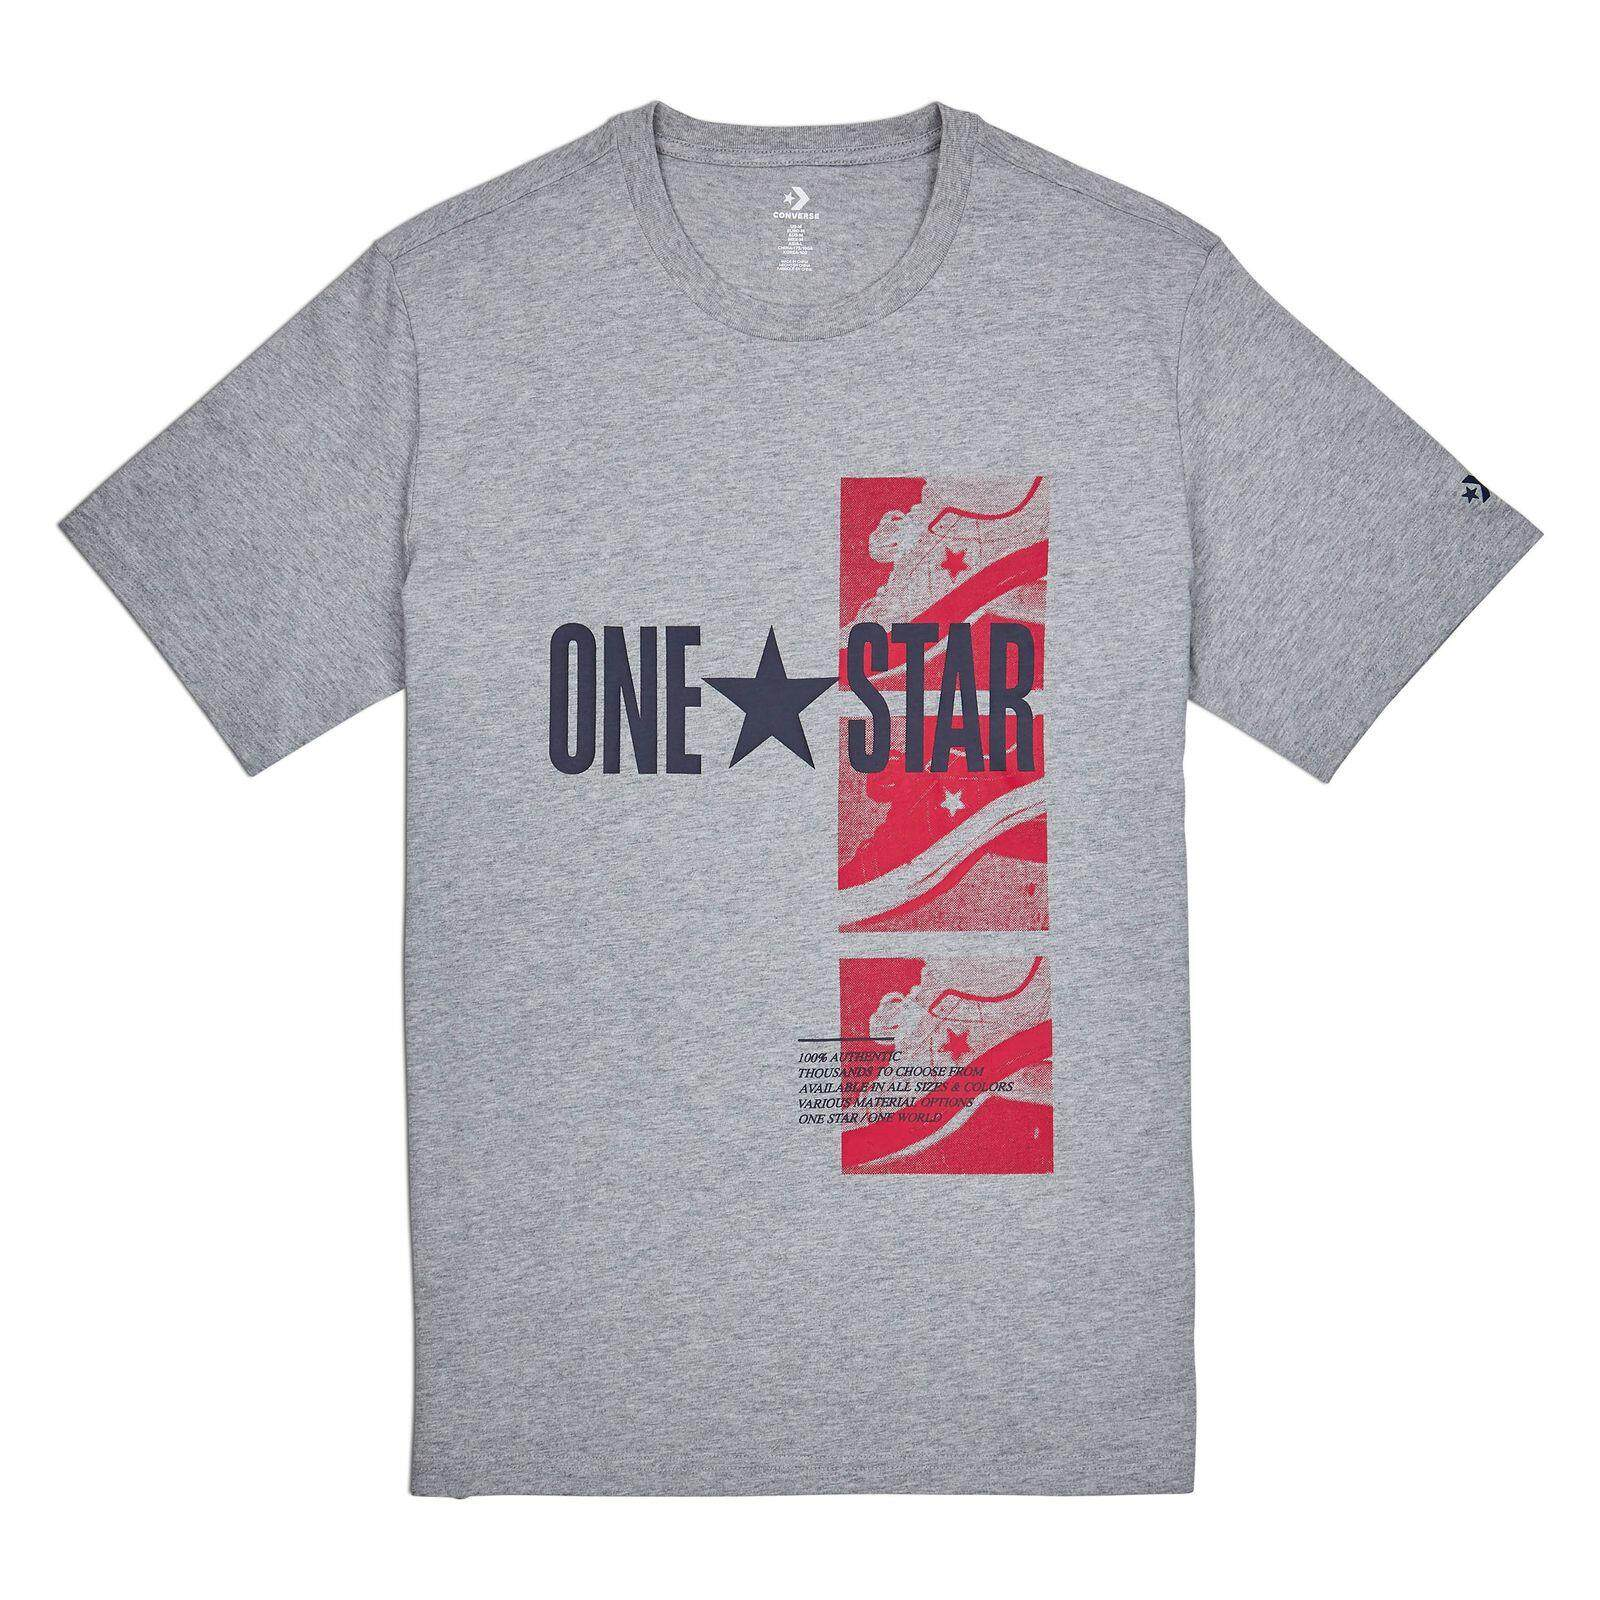 55c2b2e5e5b4 CONVERSE ONE STAR PHOTO SHORT SLEEVE TEE - VINTAGE GREY HEATHER -  10009128-035